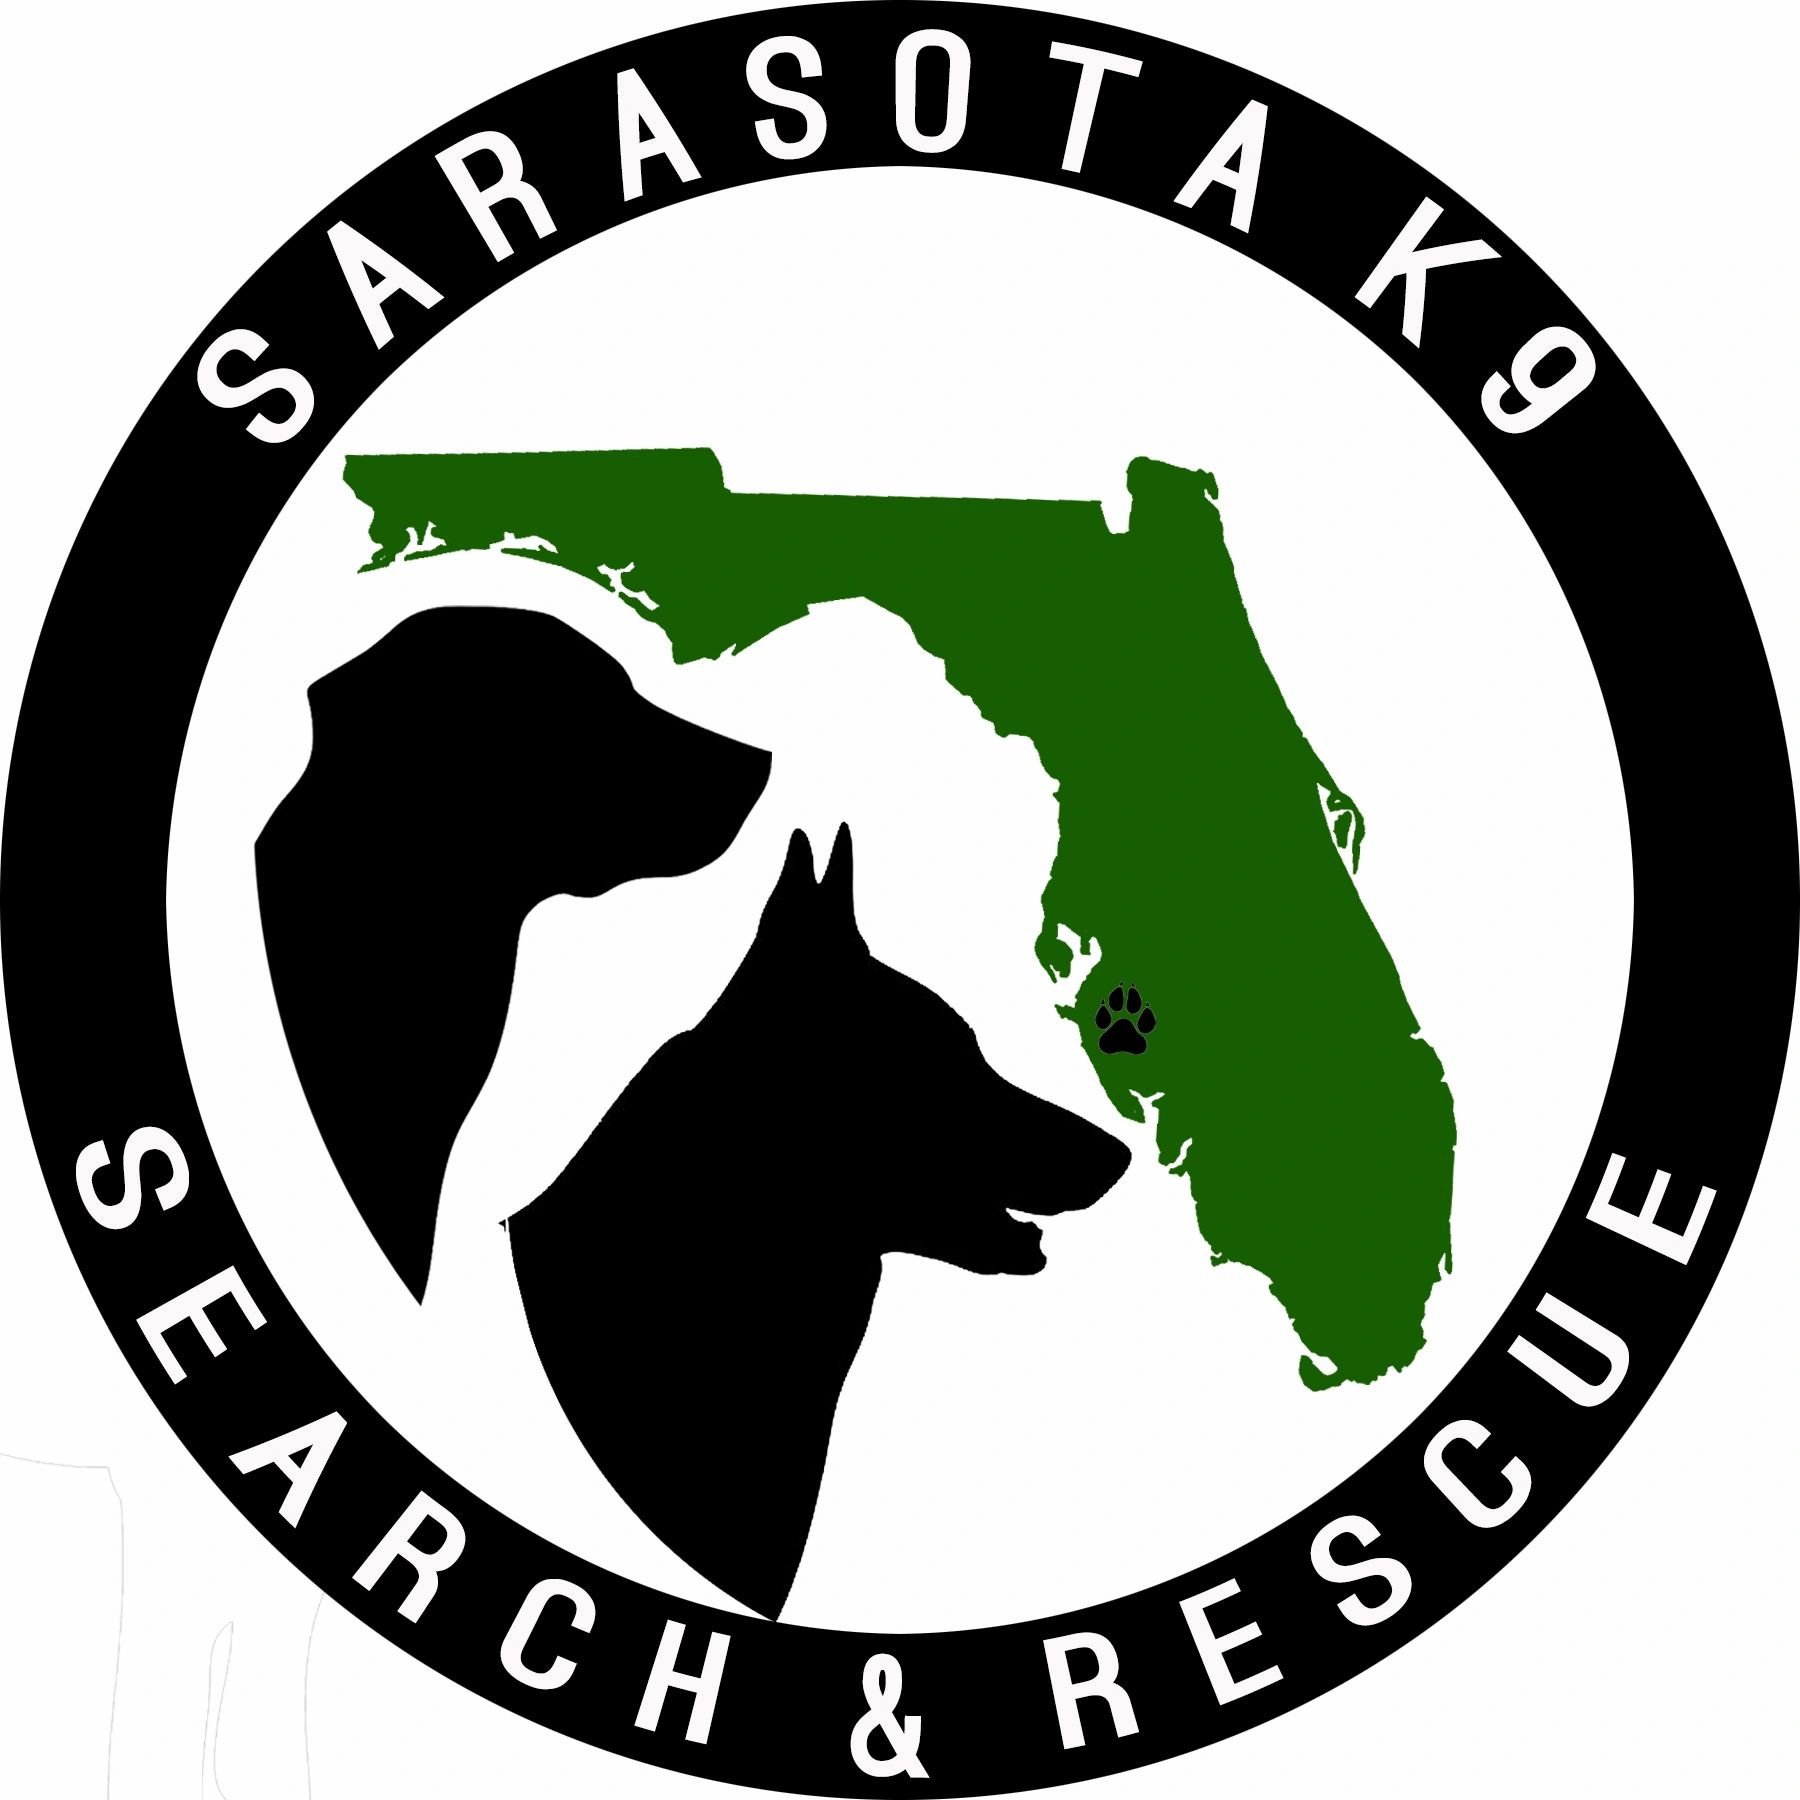 Sarasota K9 Search & Rescue logo